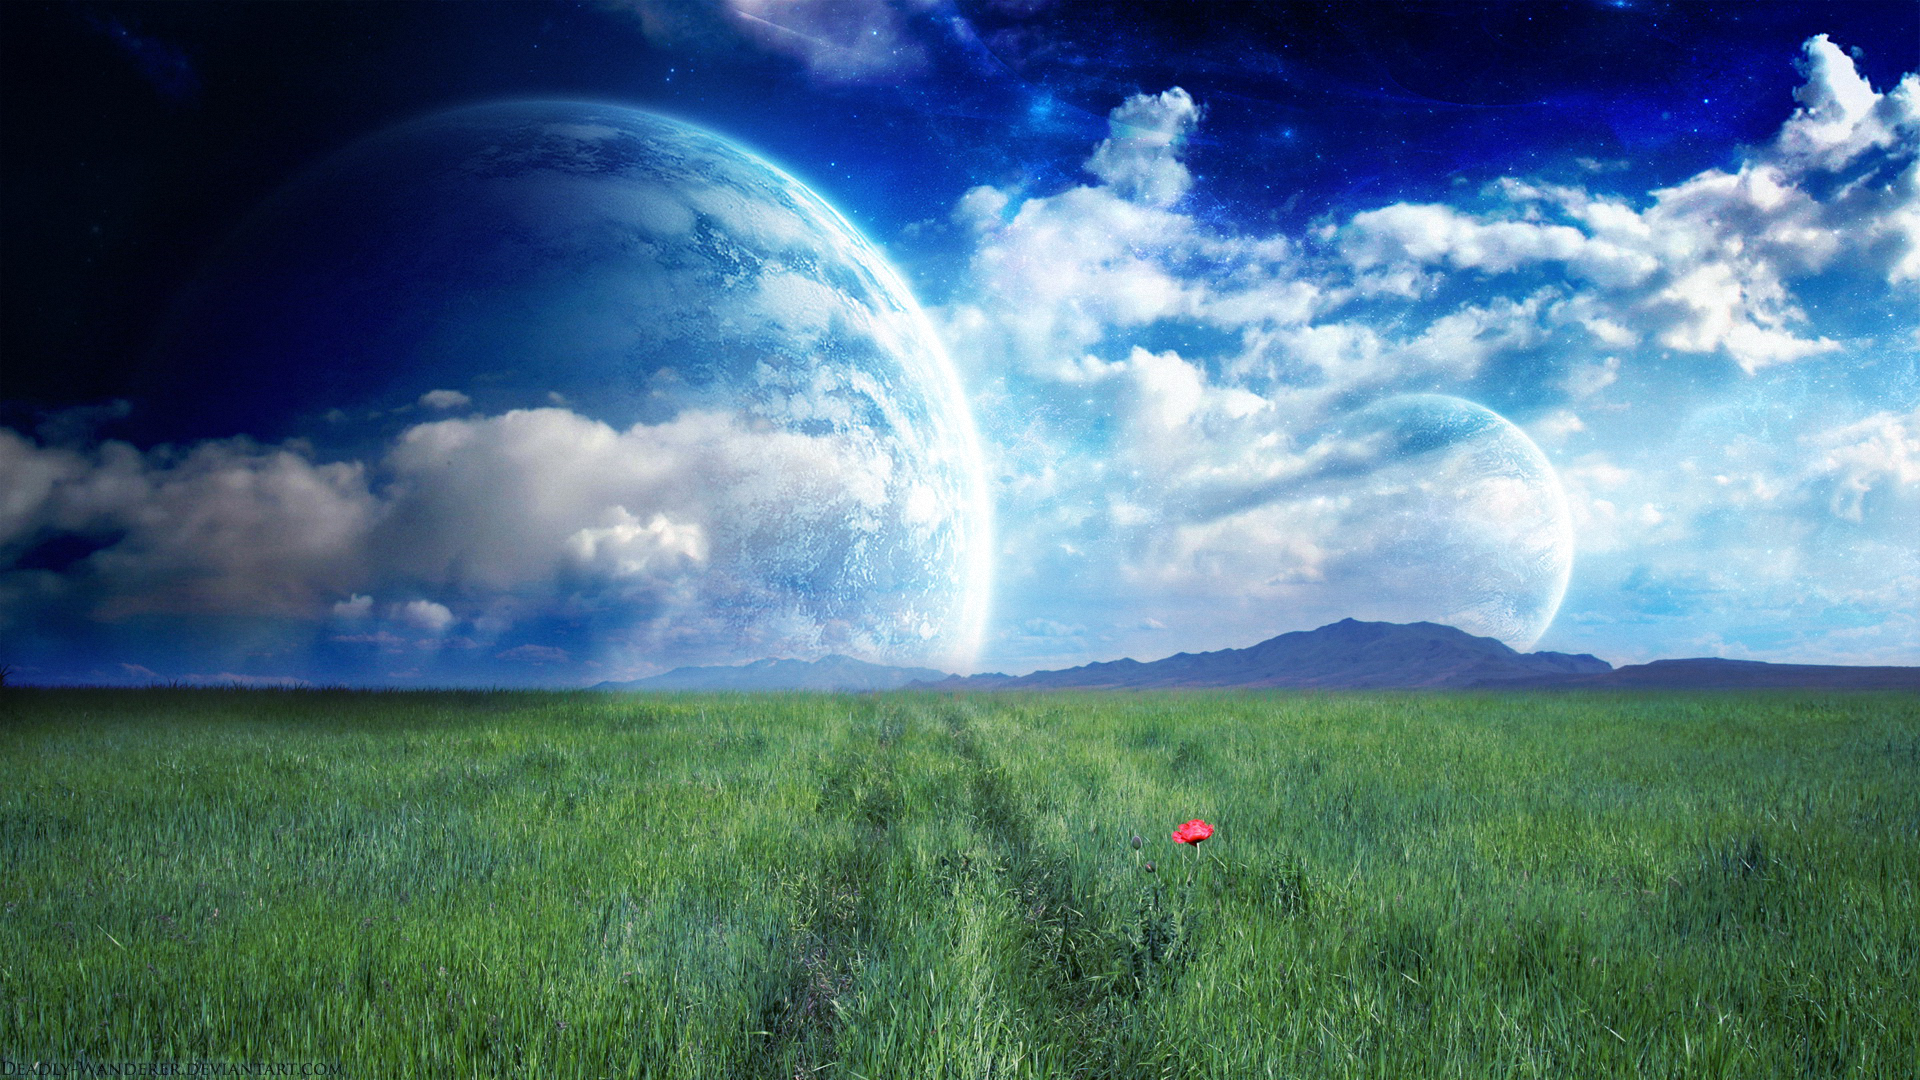 50 Georgeous Nature Wallpapers Smashing Magazine My dream world pictures